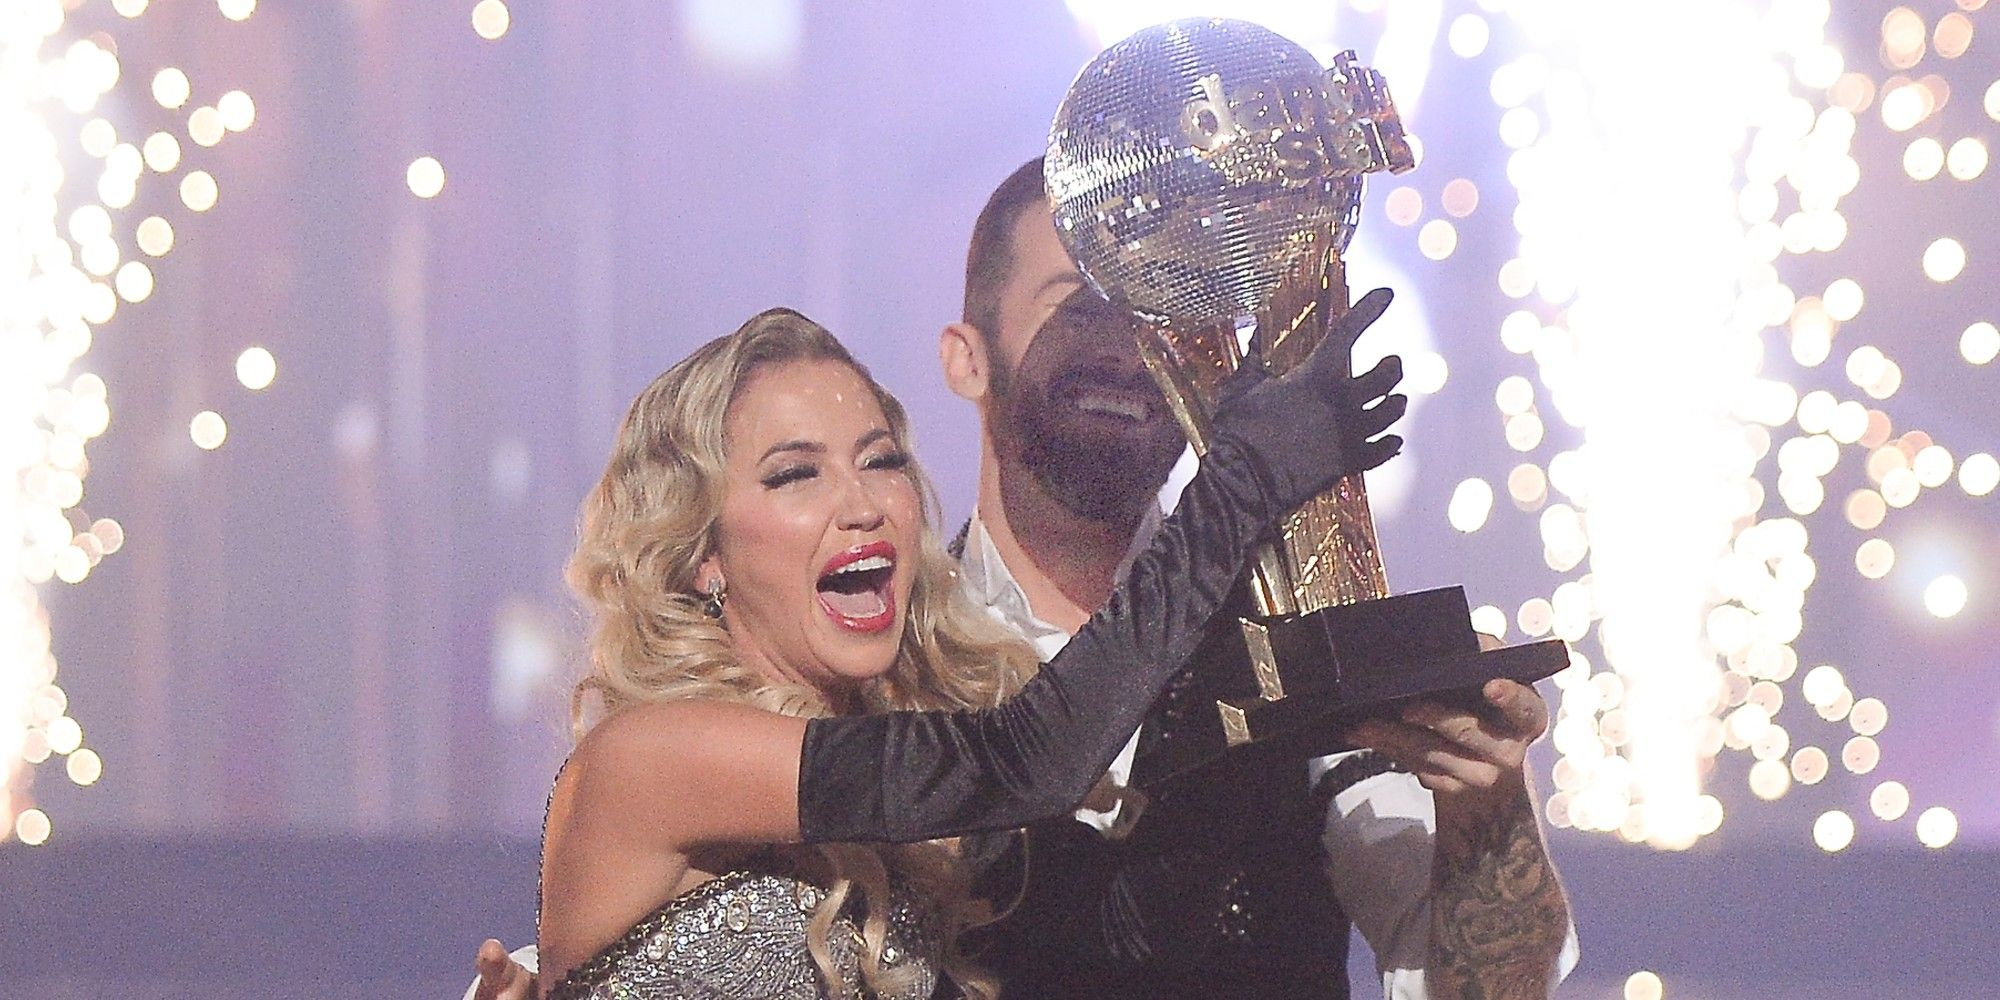 DWTS: Which Season 30 Pro Dancer Has The Most Wins (& Which Has The Least)